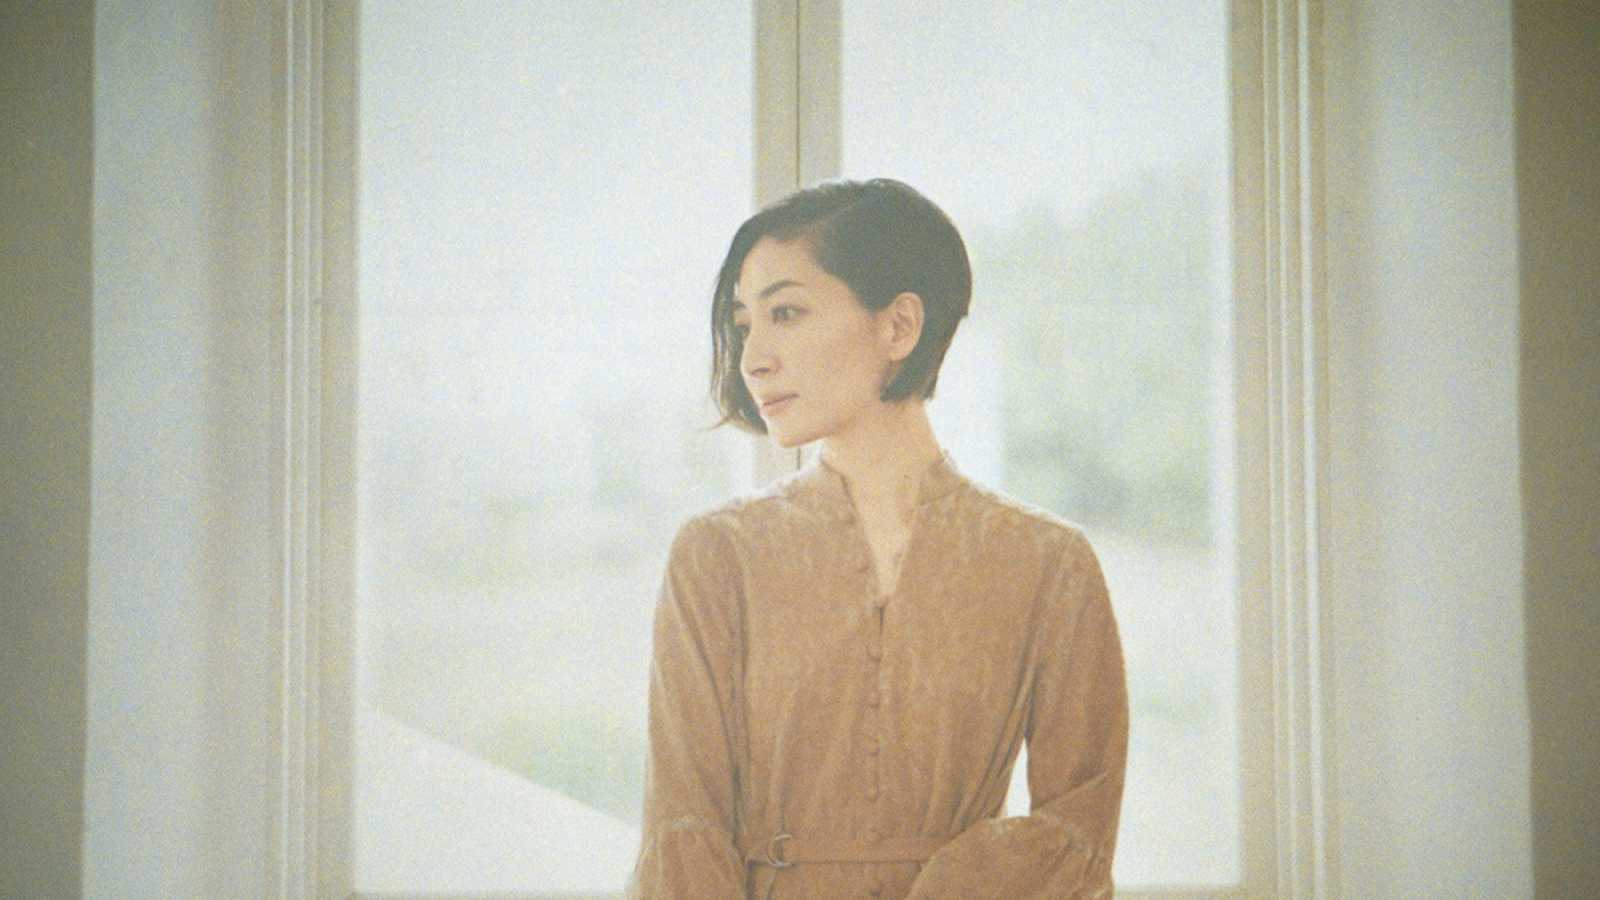 Maaya Sakamoto anuncia nuevo álbum © FlyingDog, Inc. All rights reserved.